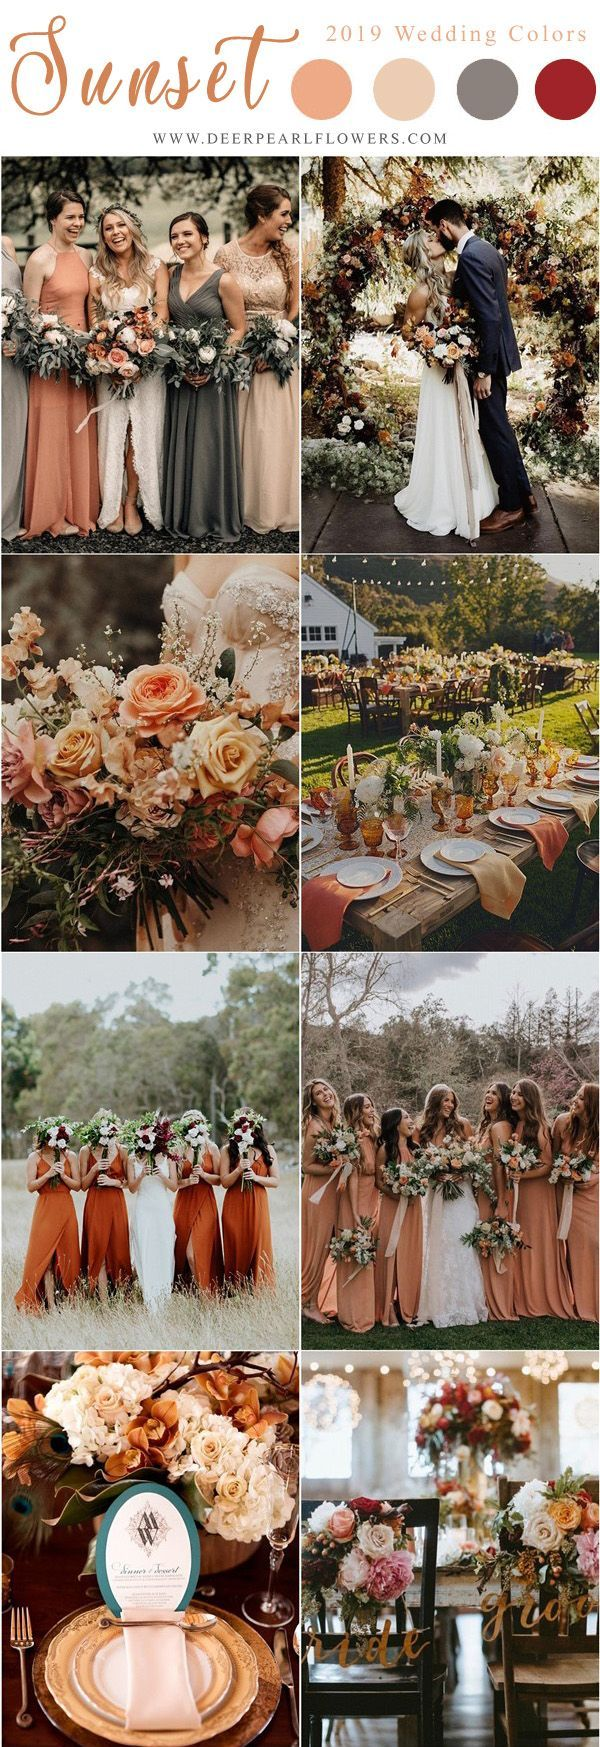 Wedding decorations for outside january 2019 Top  Wedding Color Scheme Ideas for  Trends  Wedding Ideas